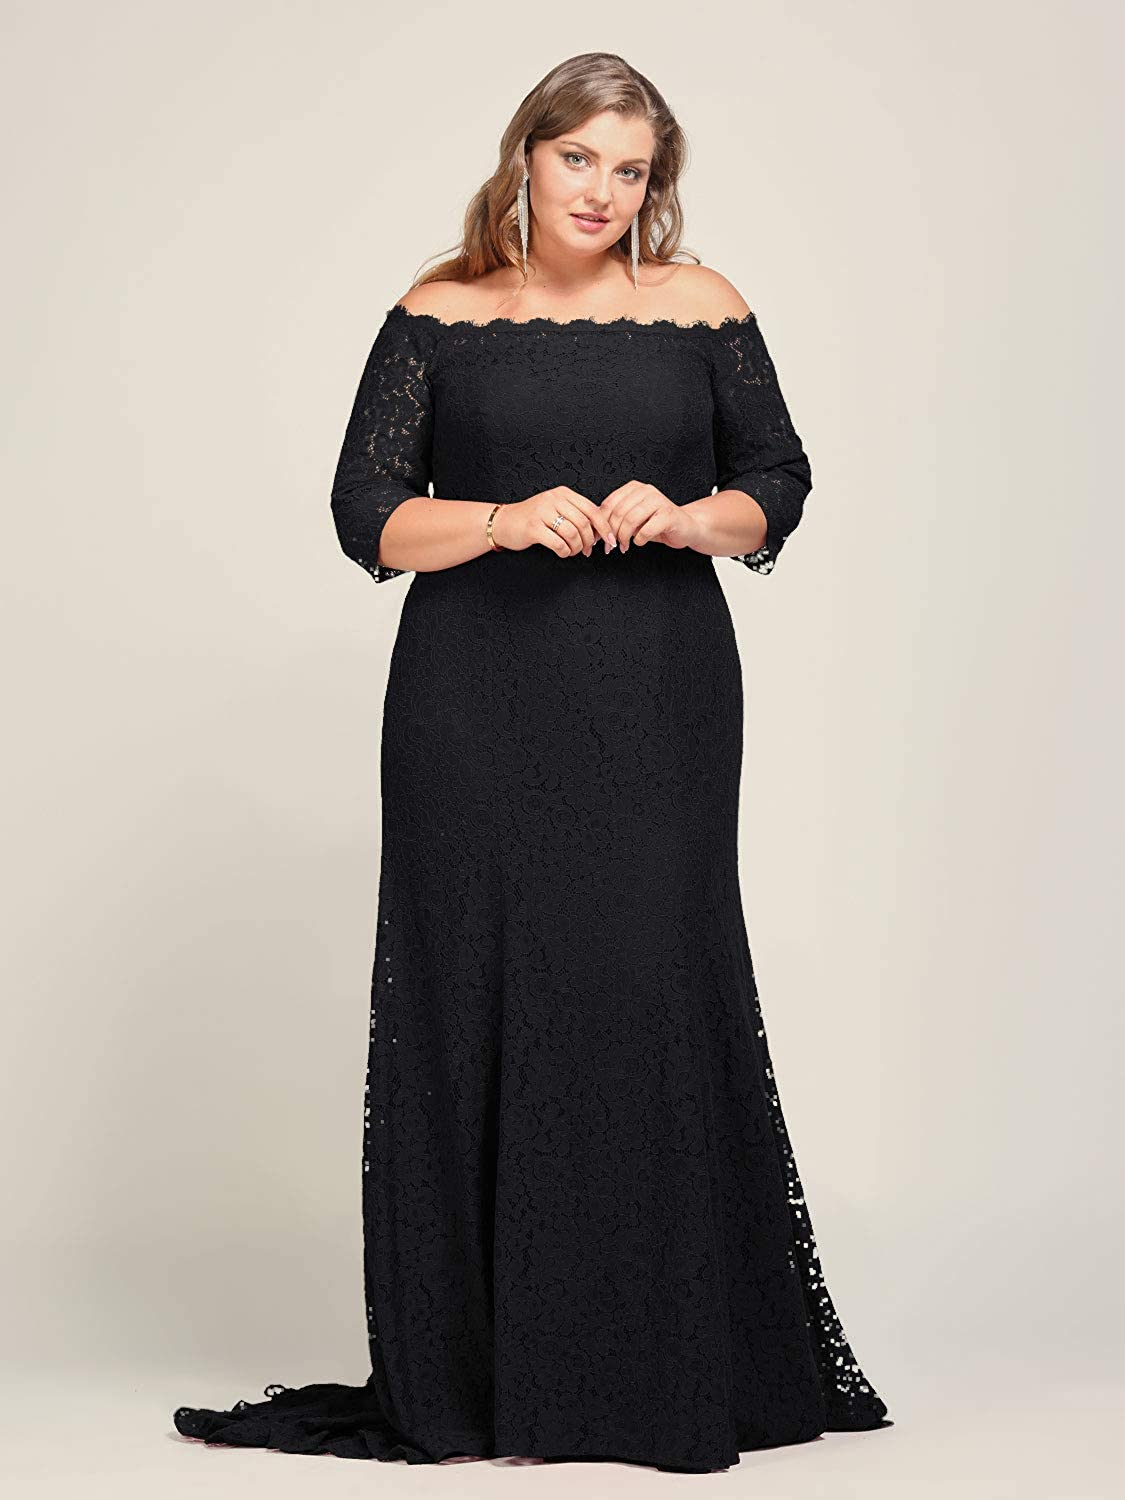 Alicepub Lace Plus Size Wedding Bridesmaid Dress Long for Formal Evening  Special Ocassions